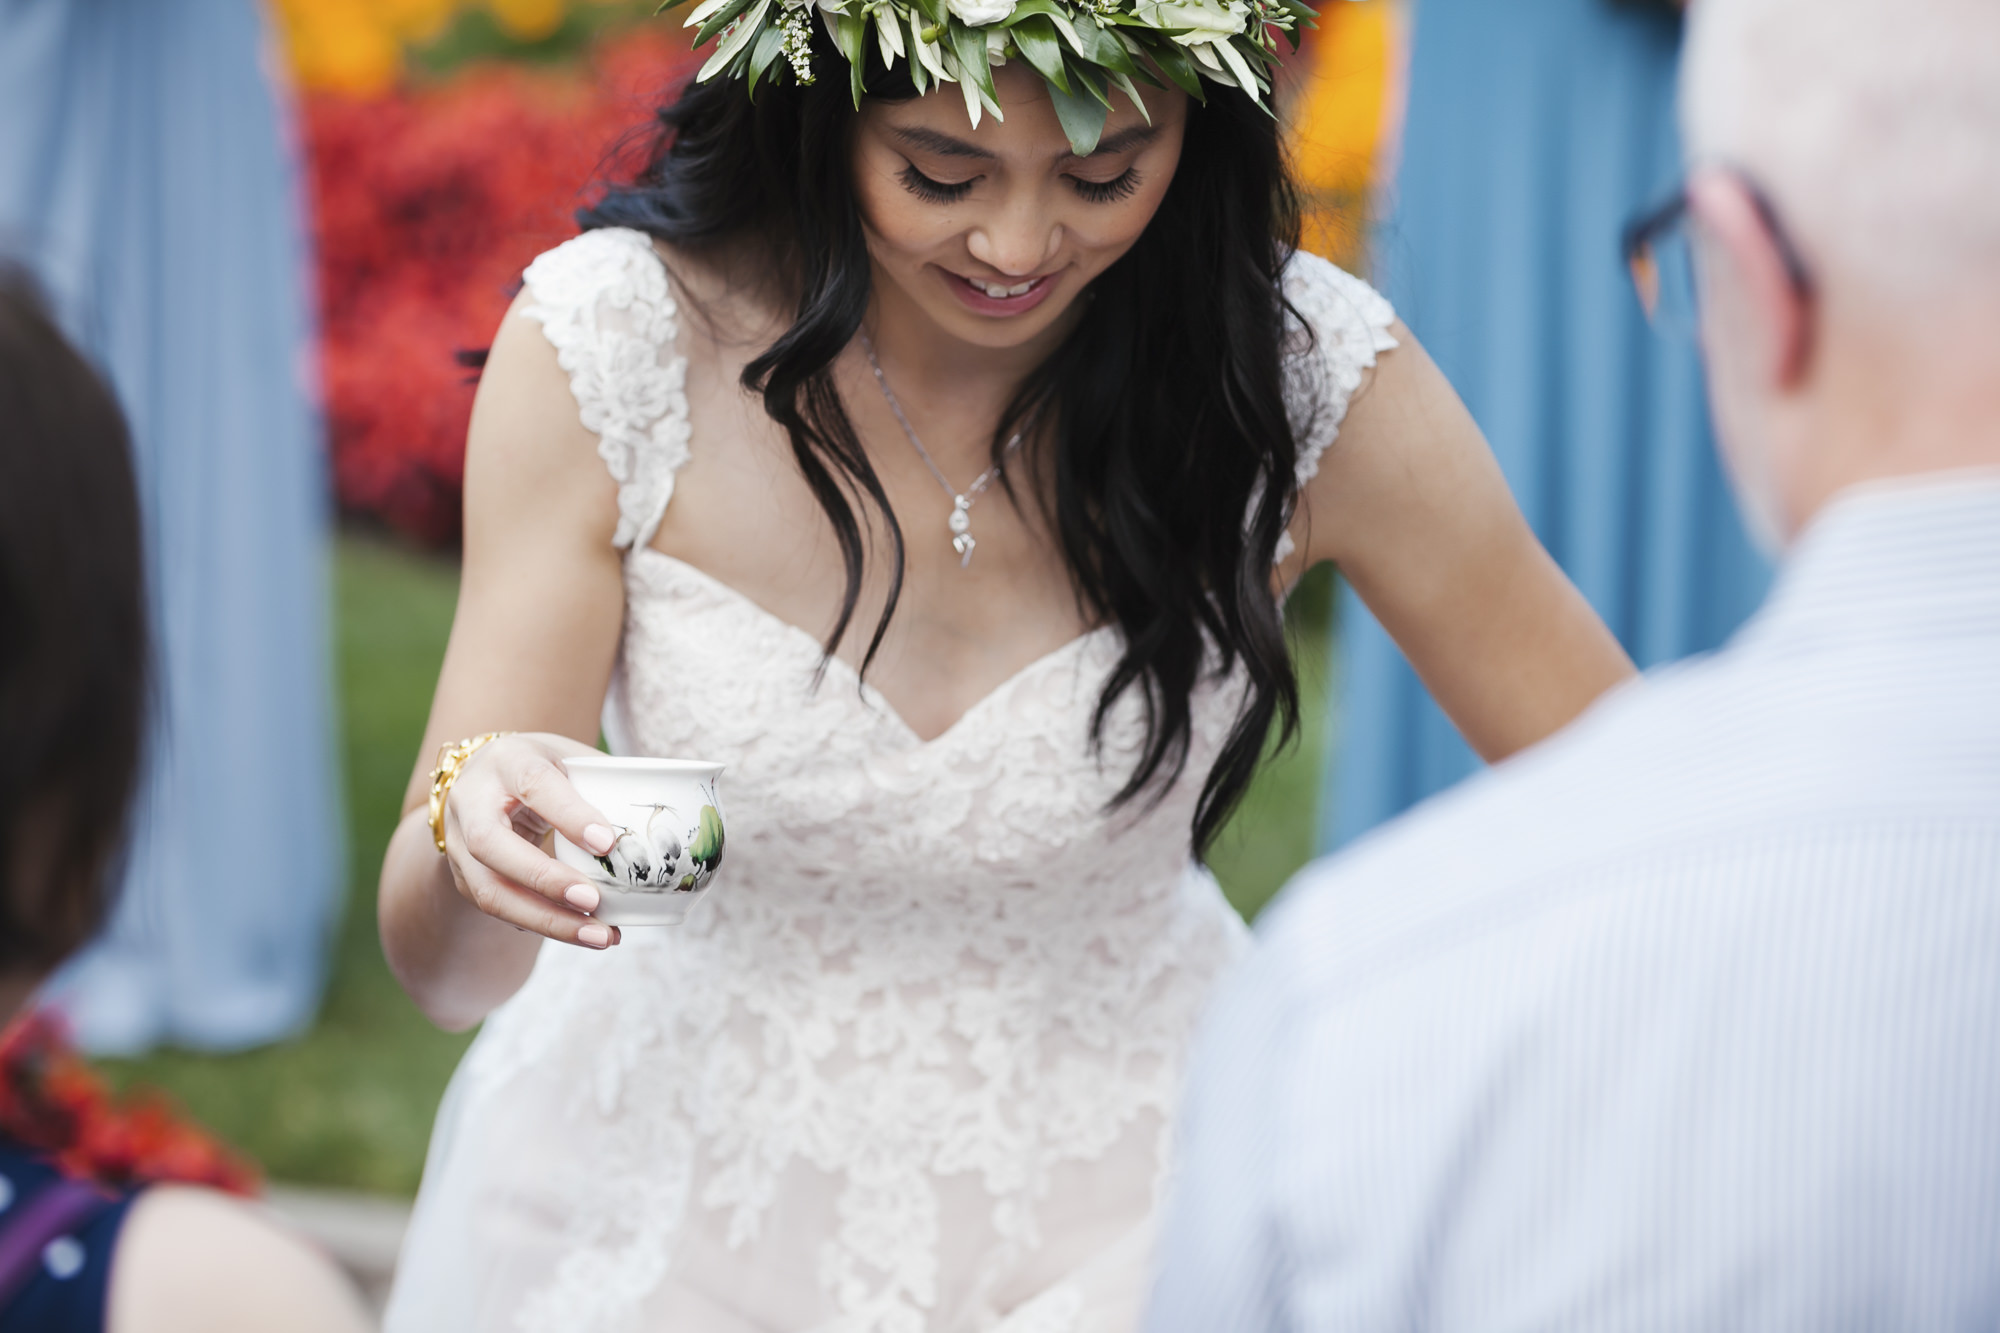 Bride with leaf crown kneels for tea ceremony